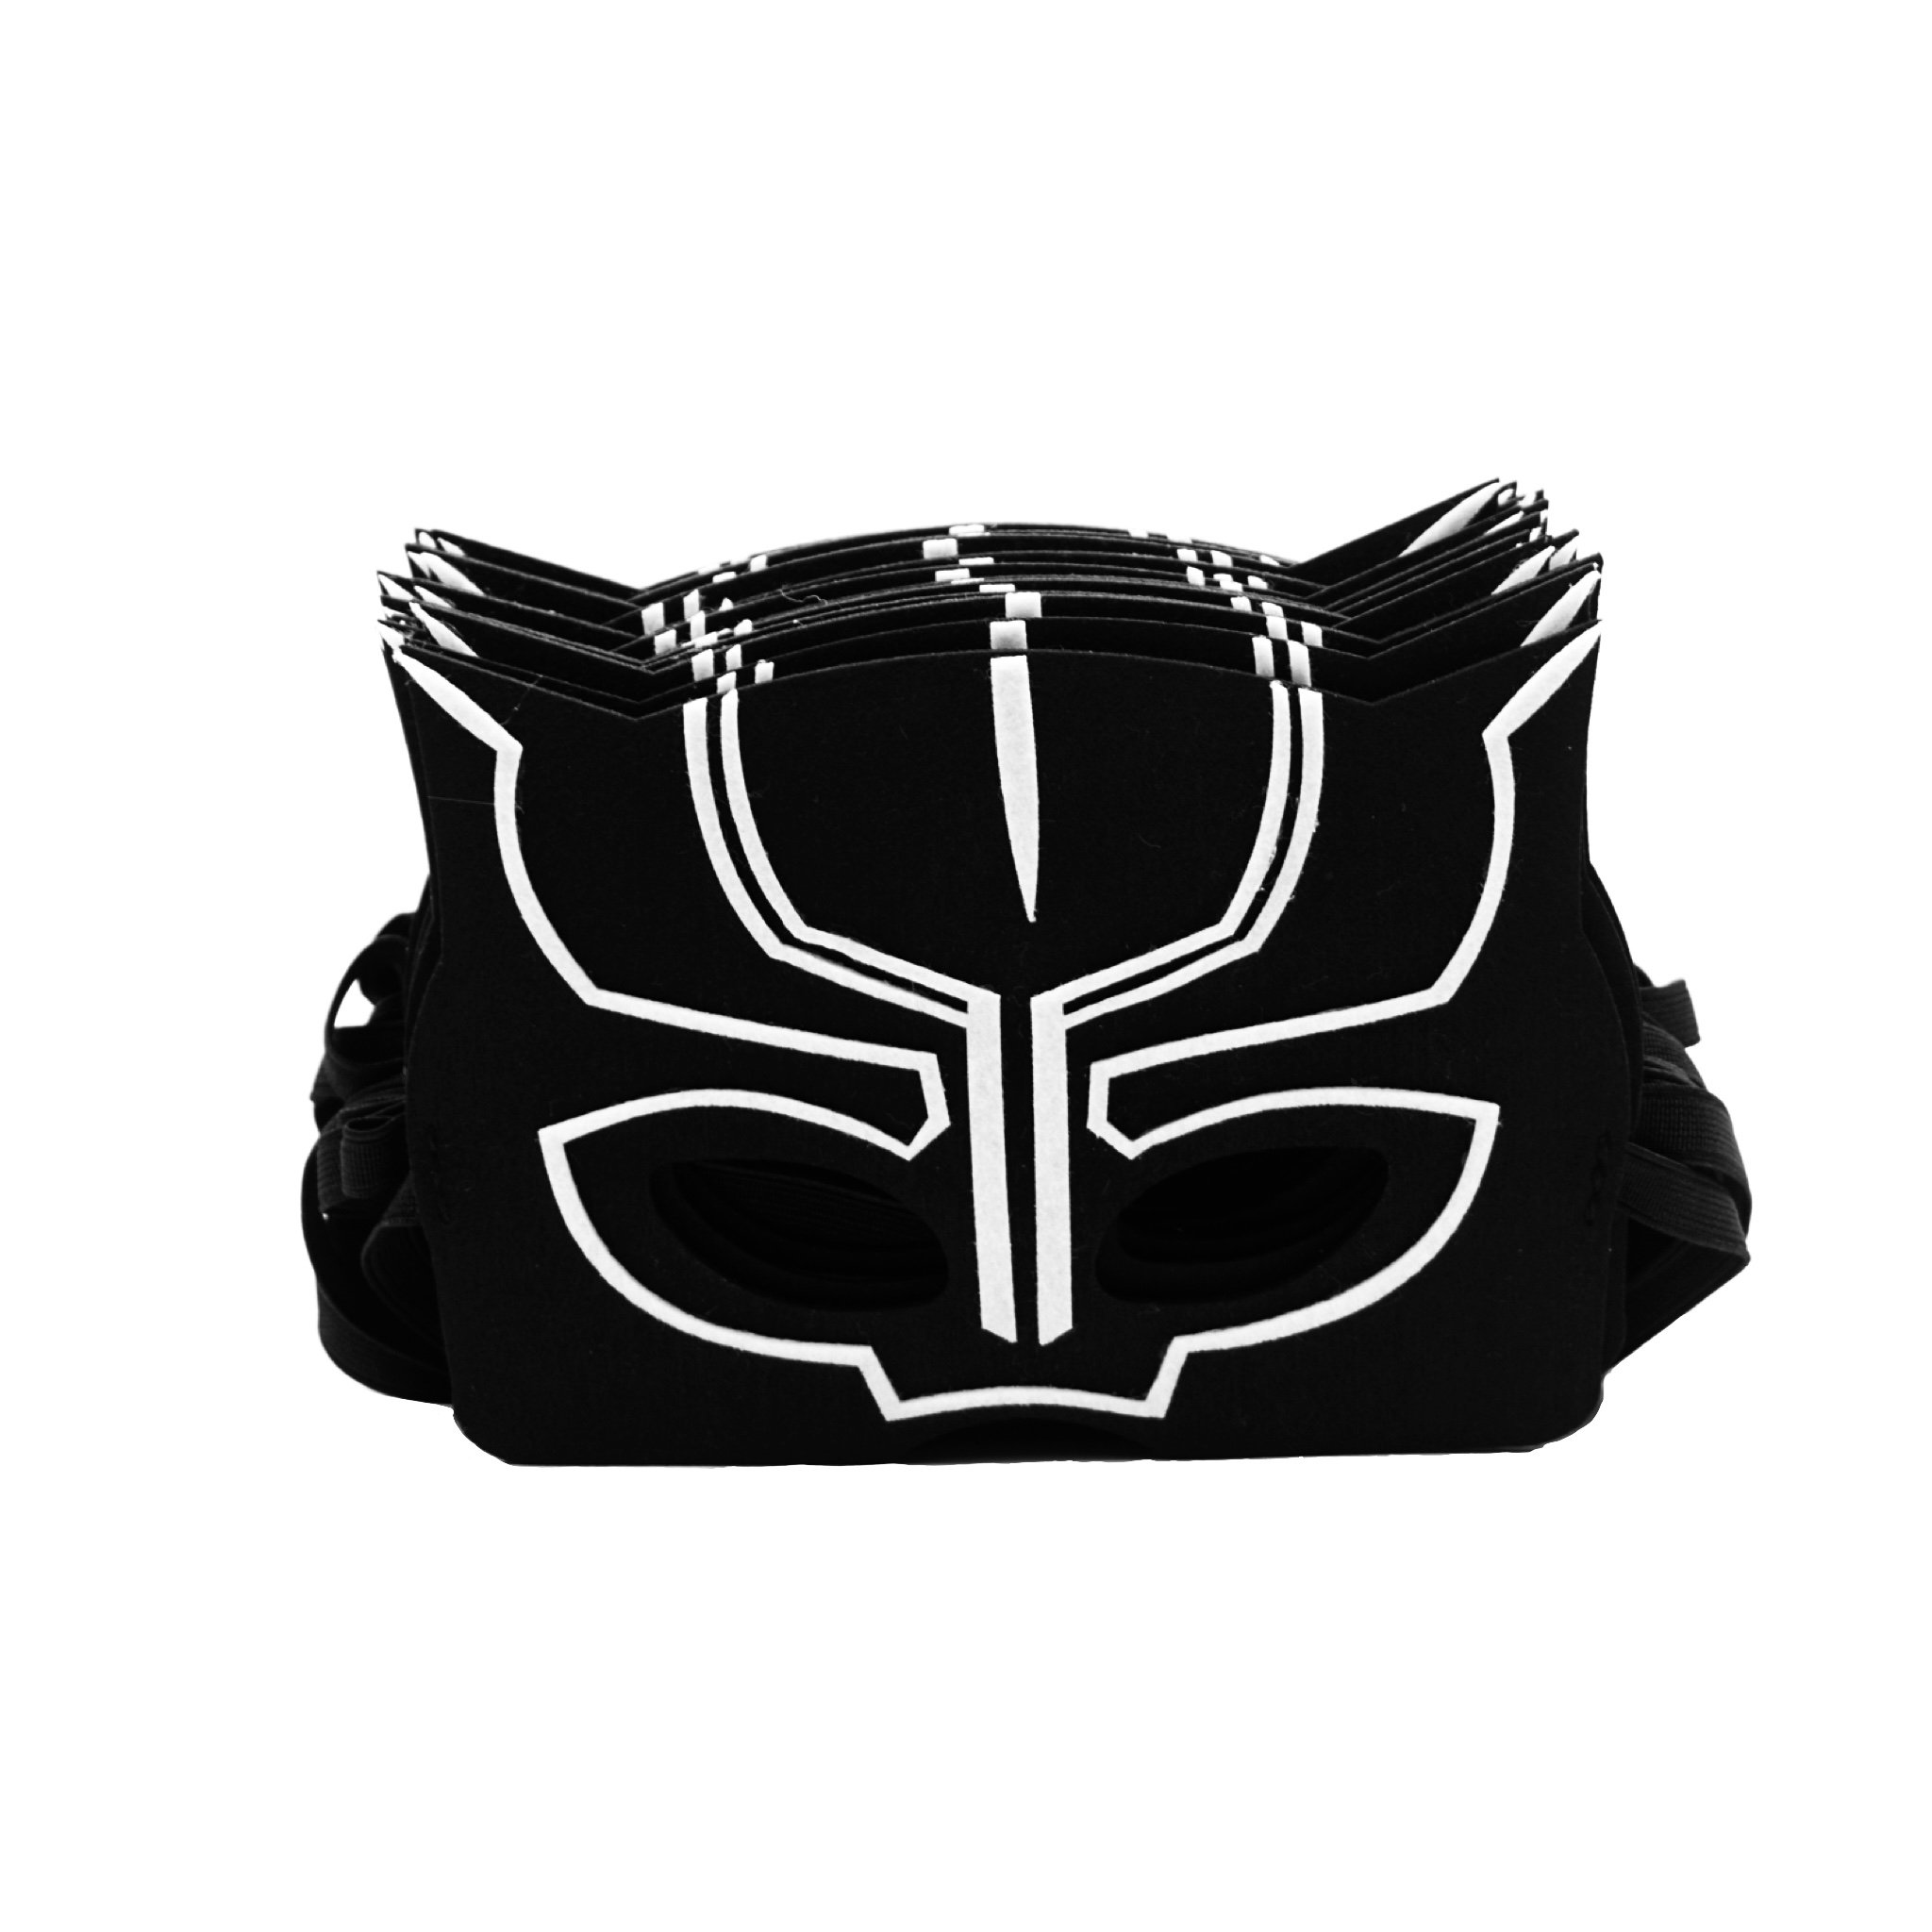 Black Panther Masks for Kids | 18 Pieces | Party Supplies & Favors for Children or Boys Aged 3+